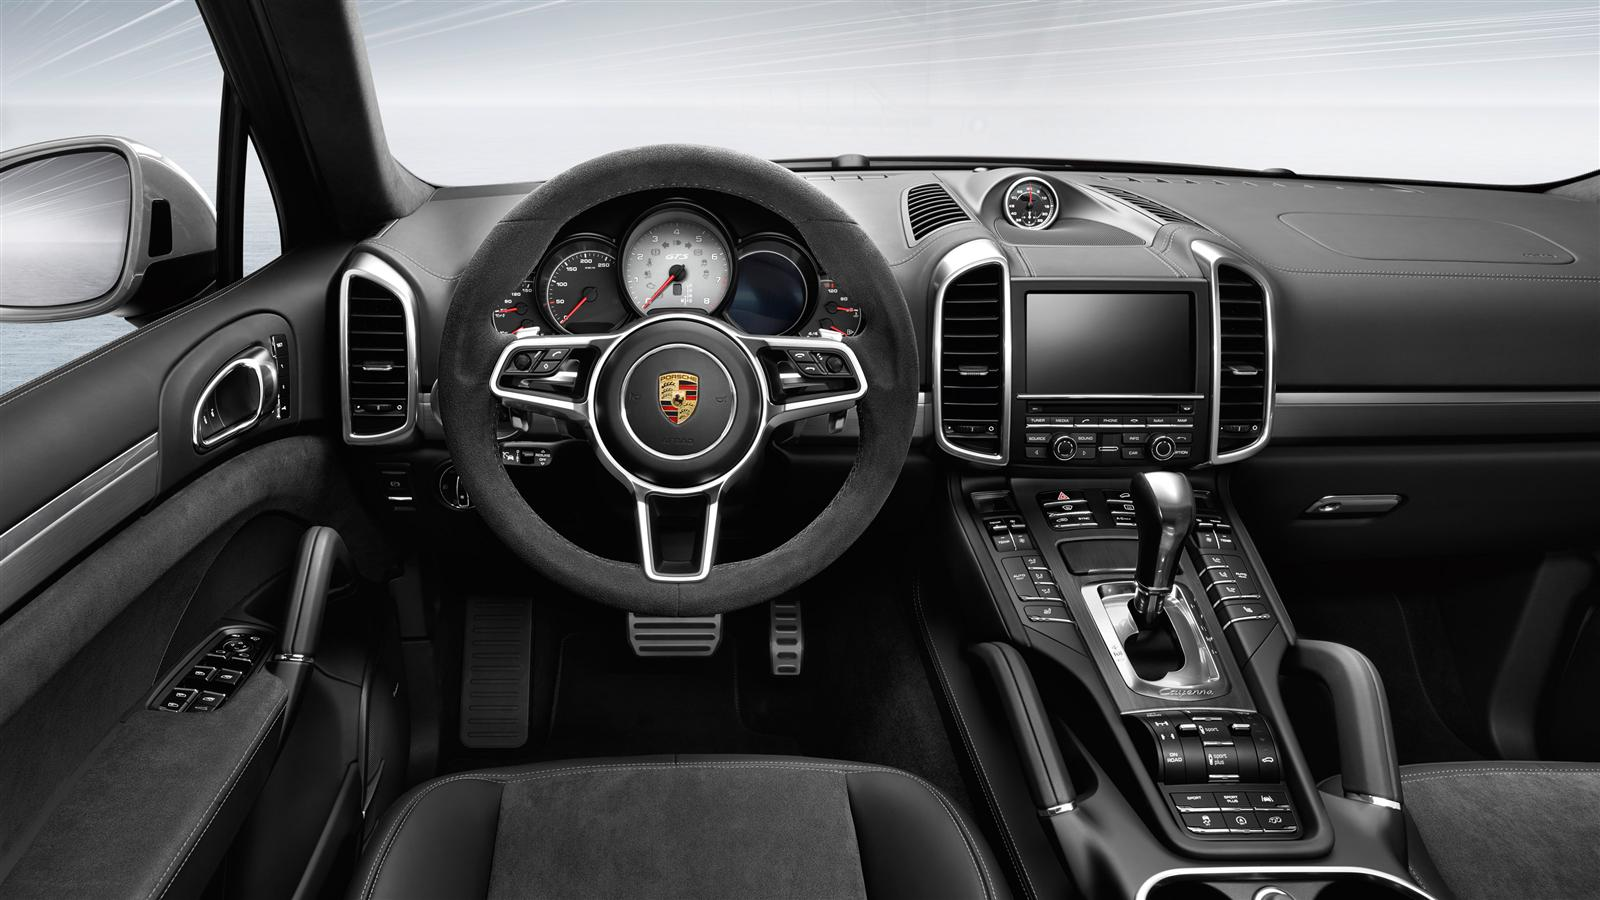 foto interior 1 porsche cayenne gts suv todocamino 2015. Black Bedroom Furniture Sets. Home Design Ideas